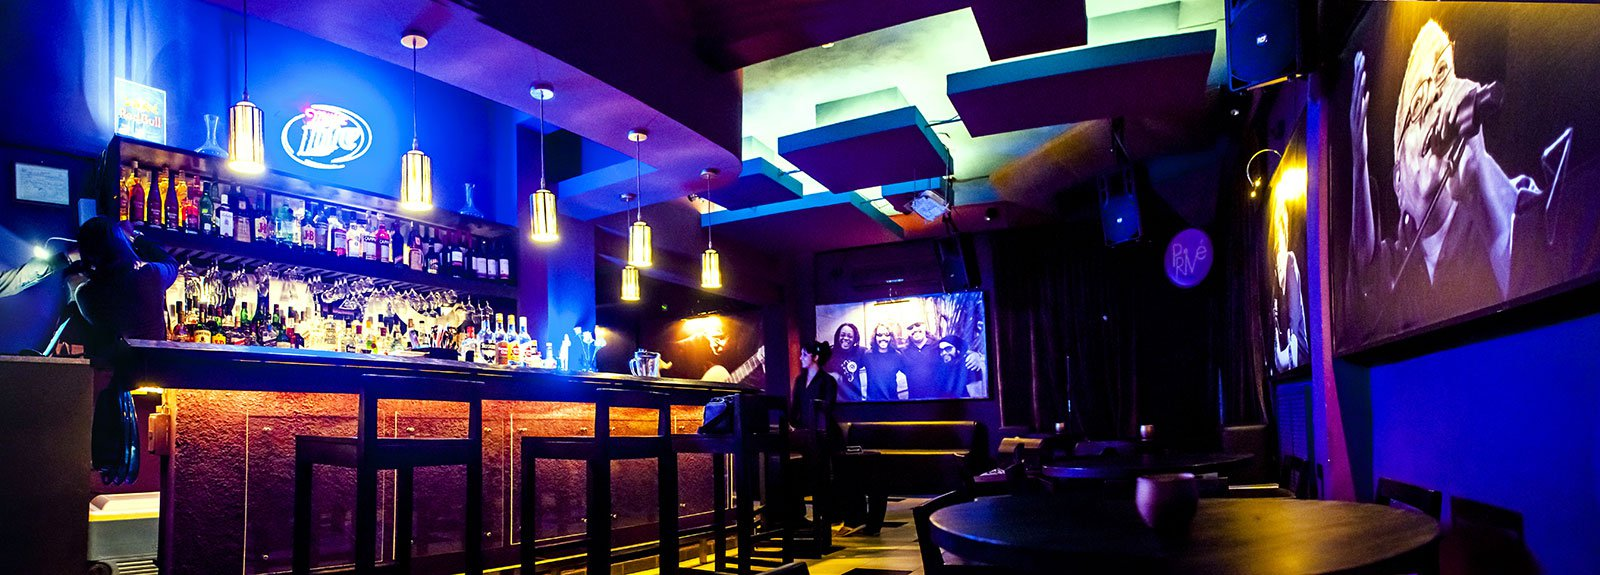 Prive Lounge, black wood and blue walls